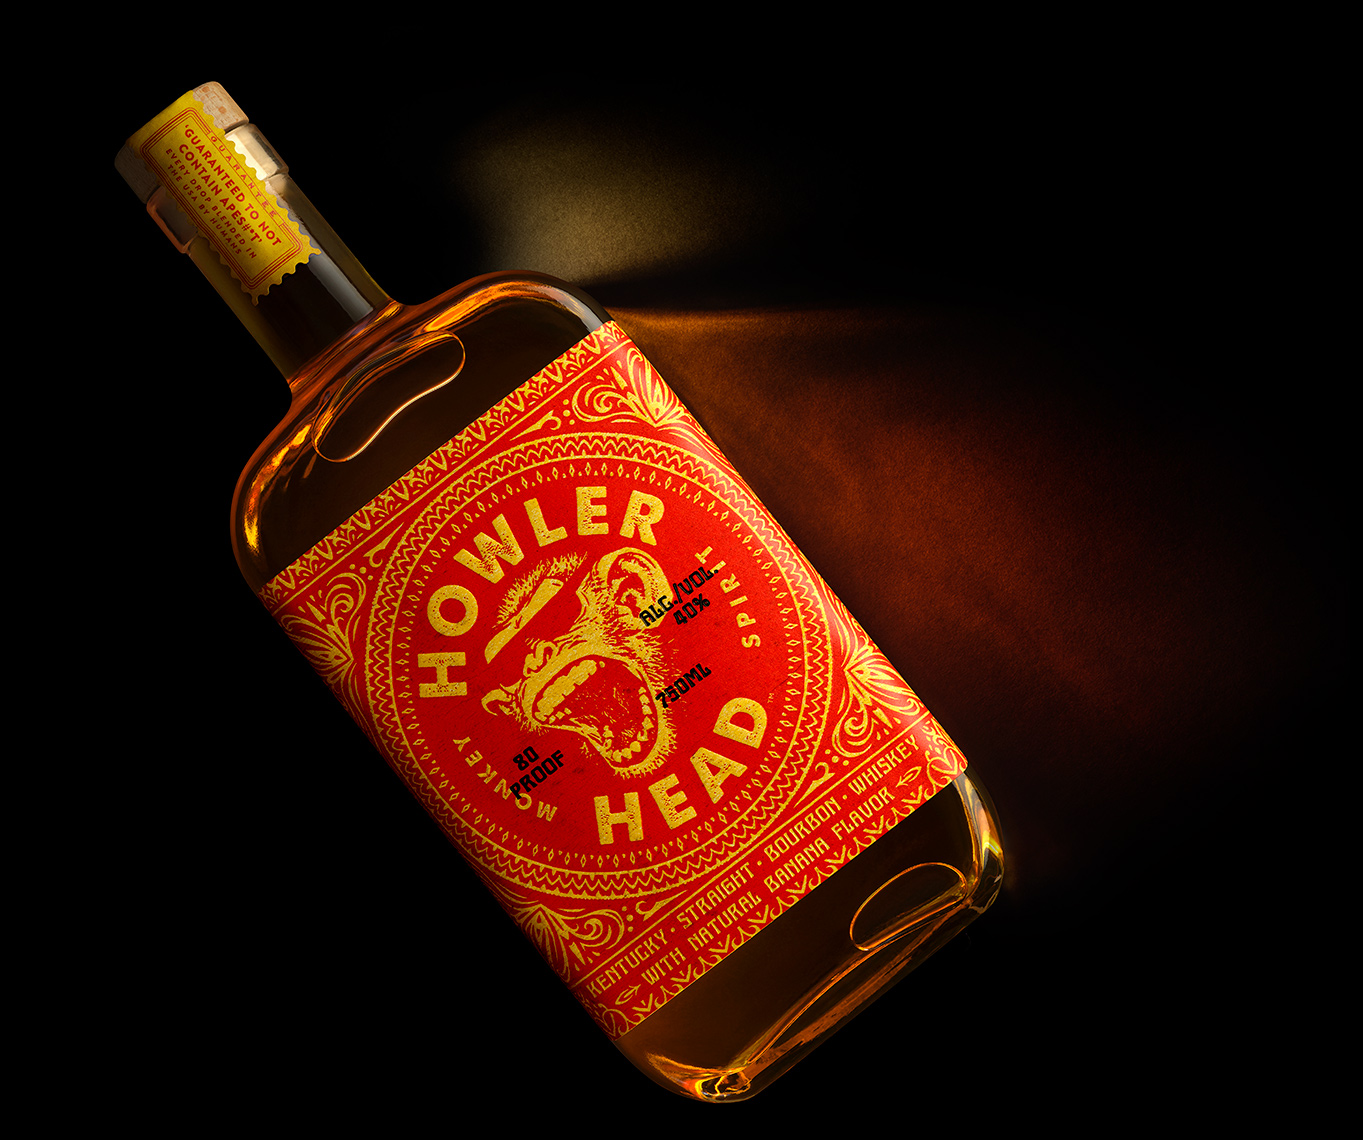 Red Productions Product & Still Life Photography Howler Head Kentucky Straight Bourbon Whiskey Banana